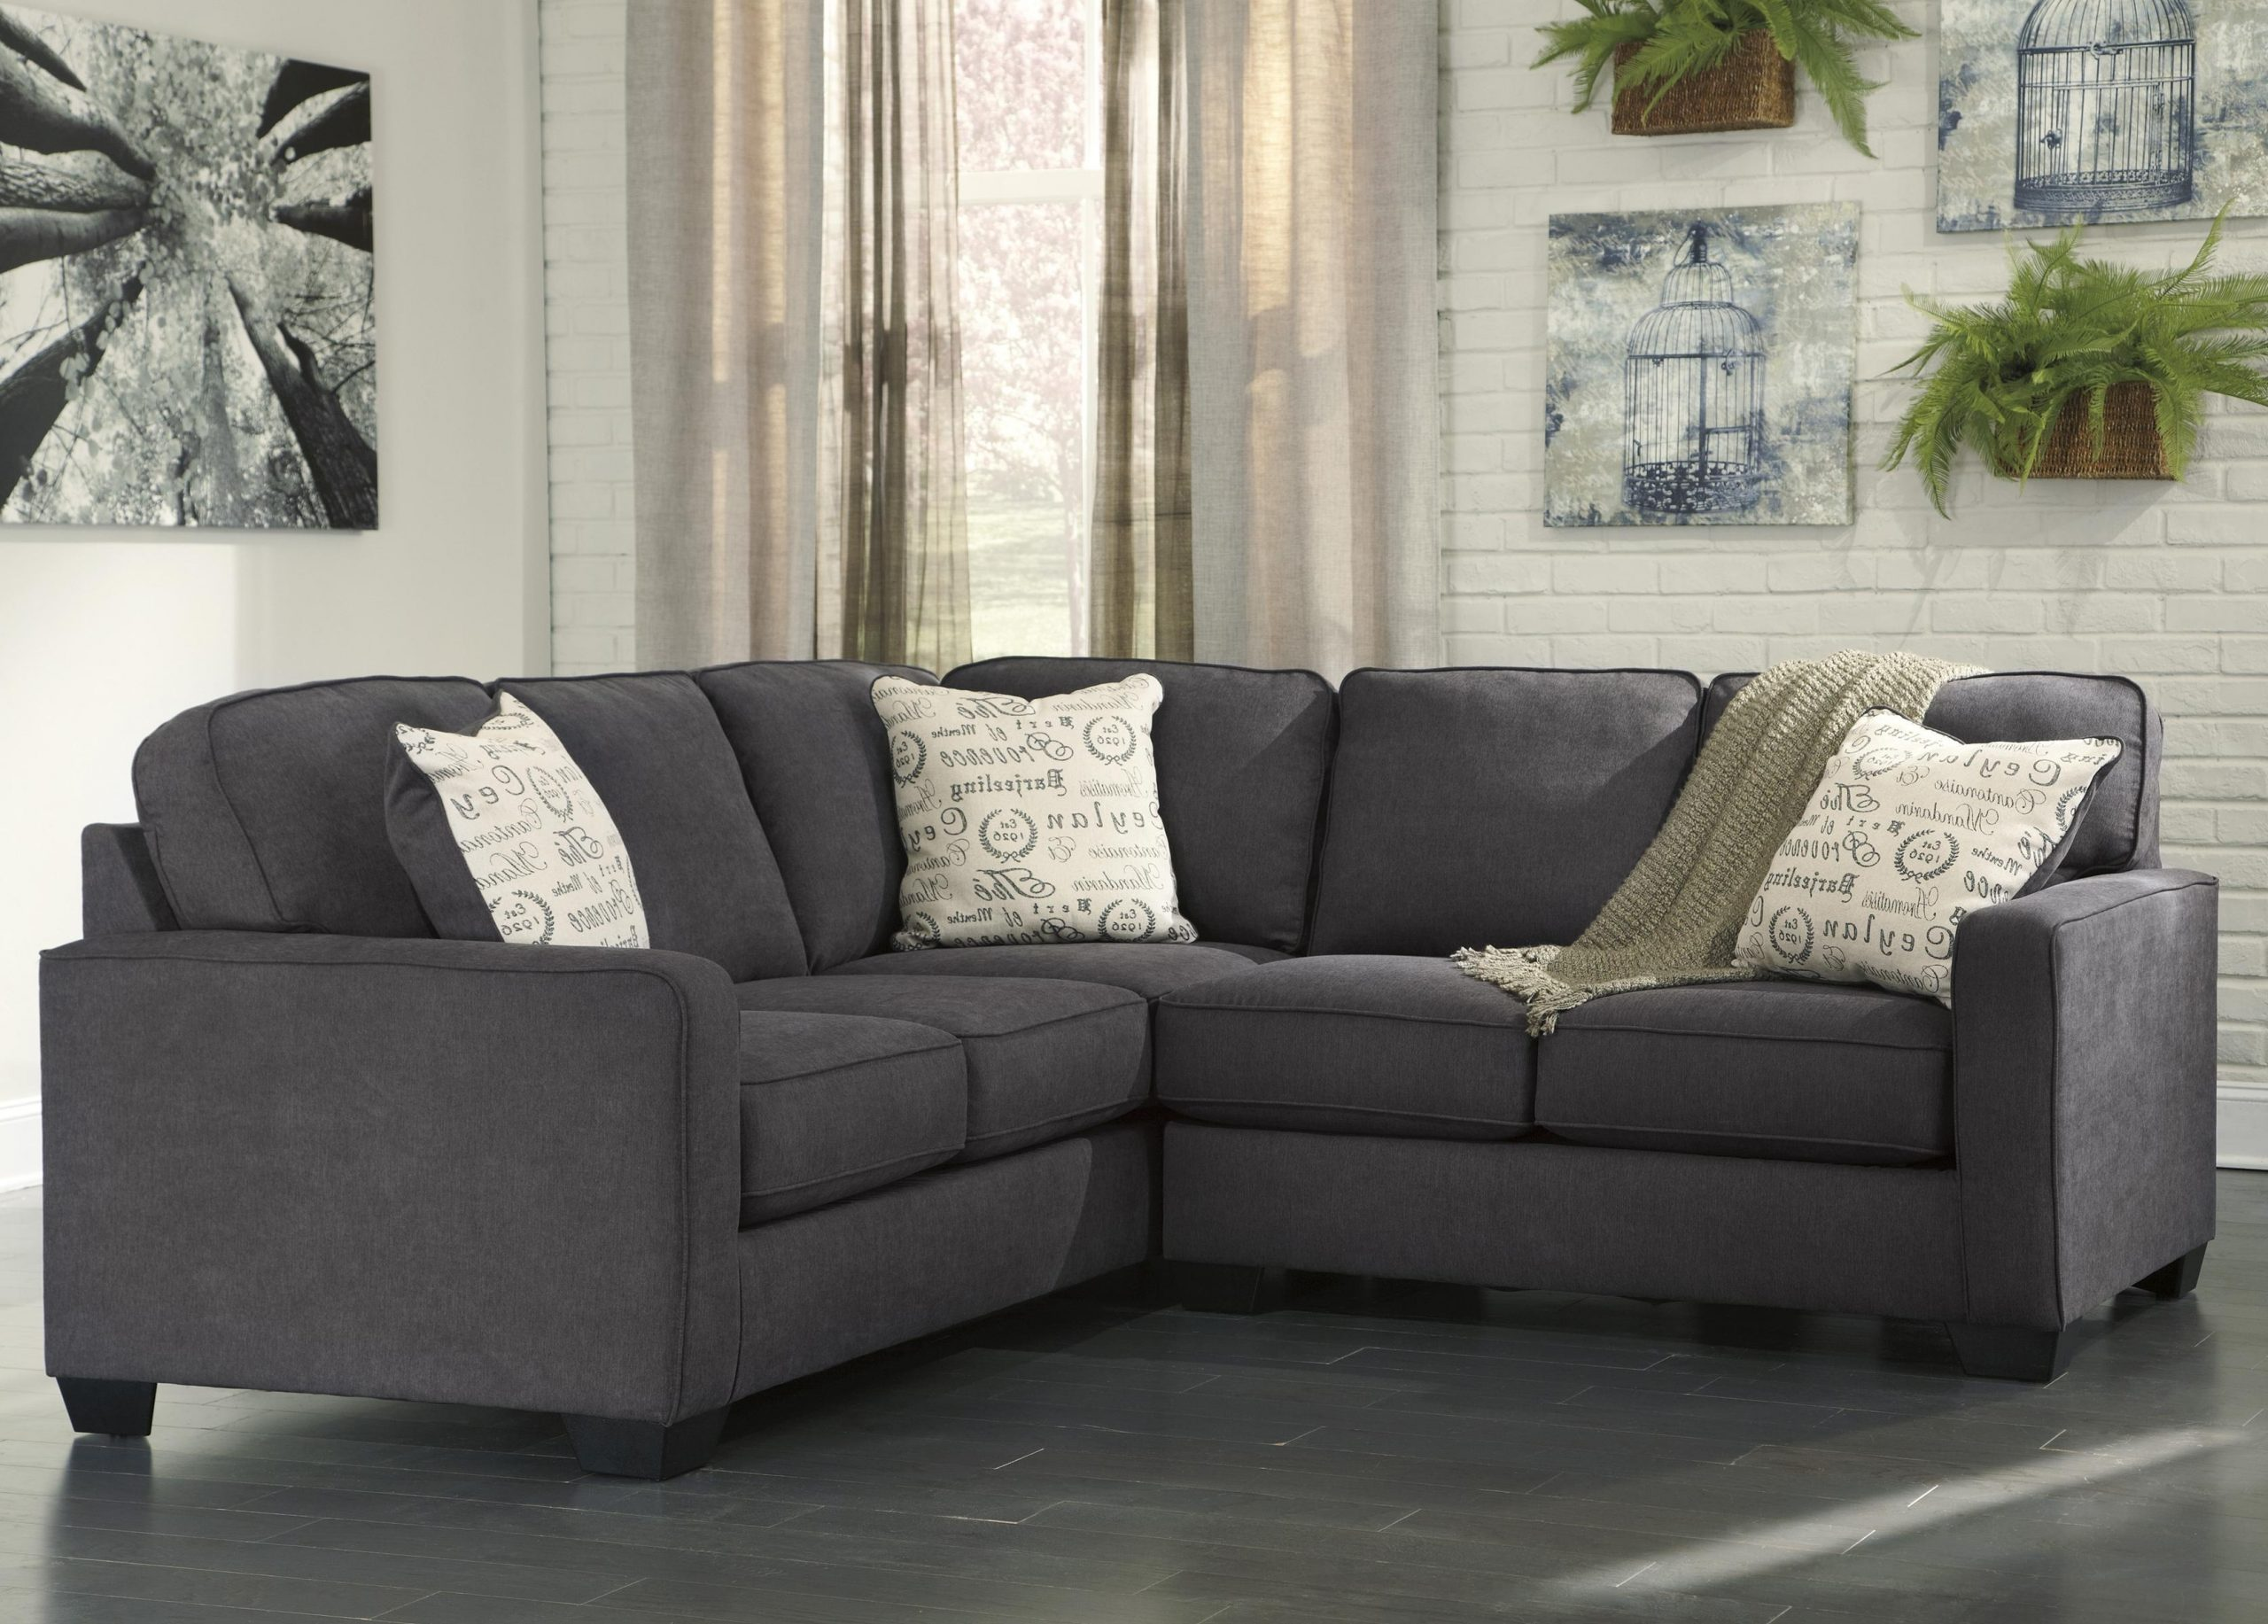 East Bay Sectional Sofas